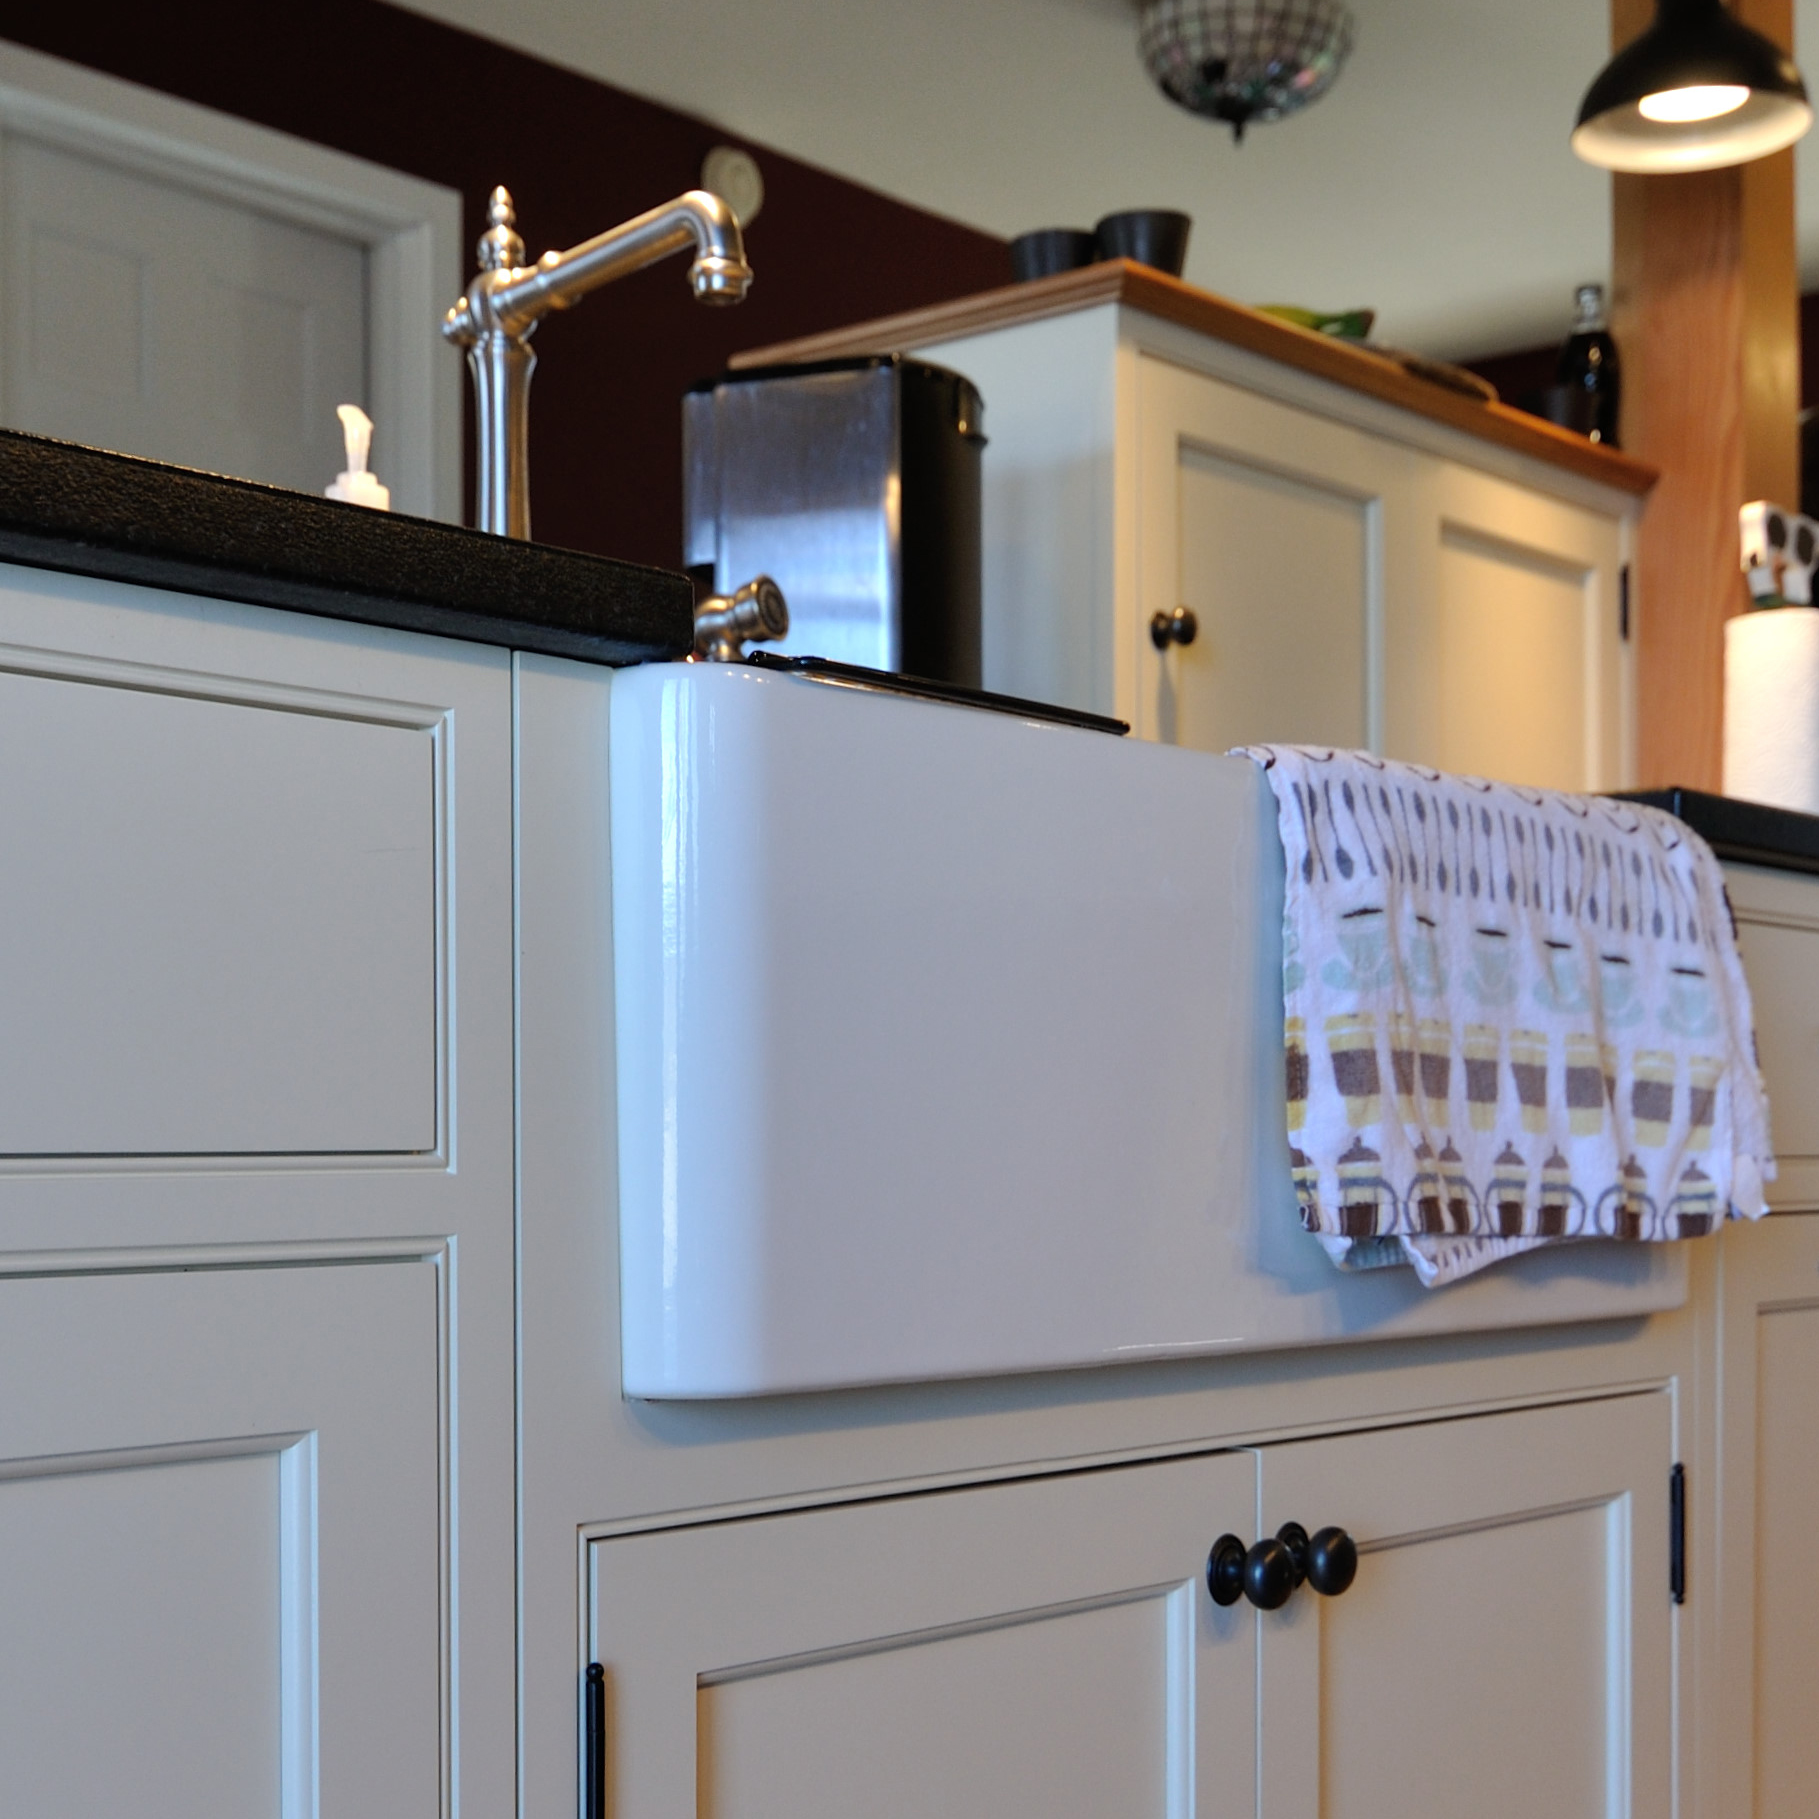 Kohler Artifacts Faucet,Blanco Fireclay Apron Front Sink